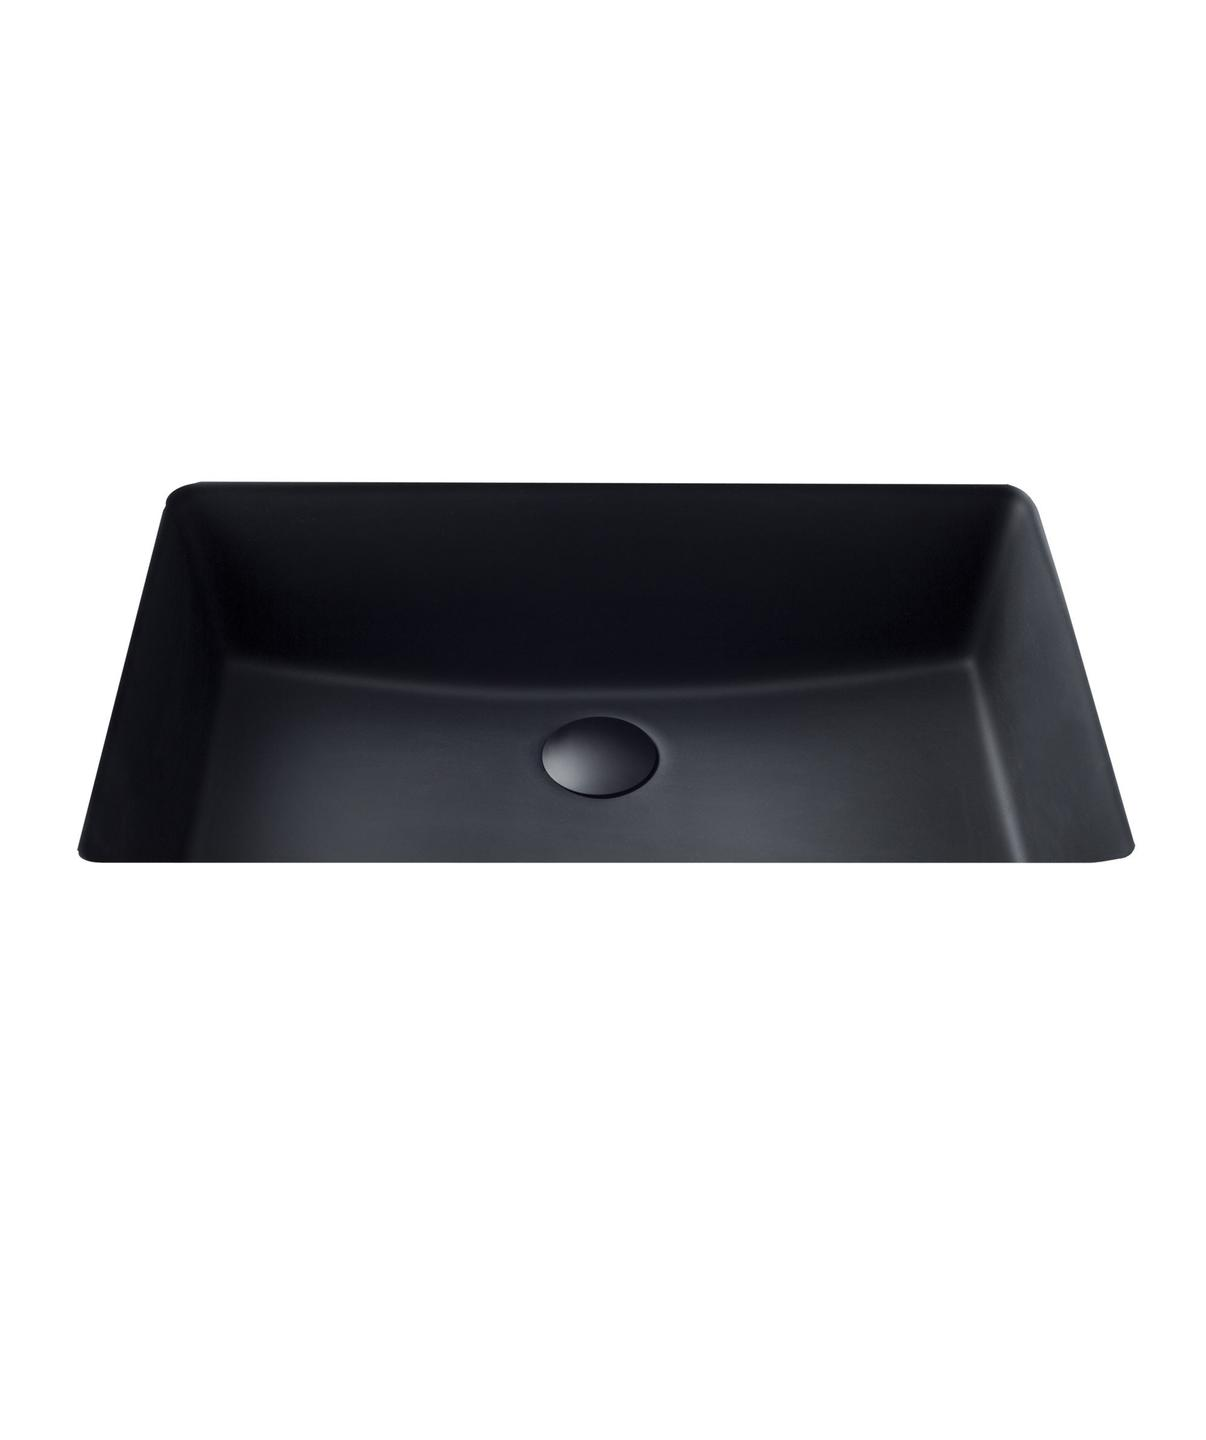 SEIMA LETO 340 KITCHEN SINK